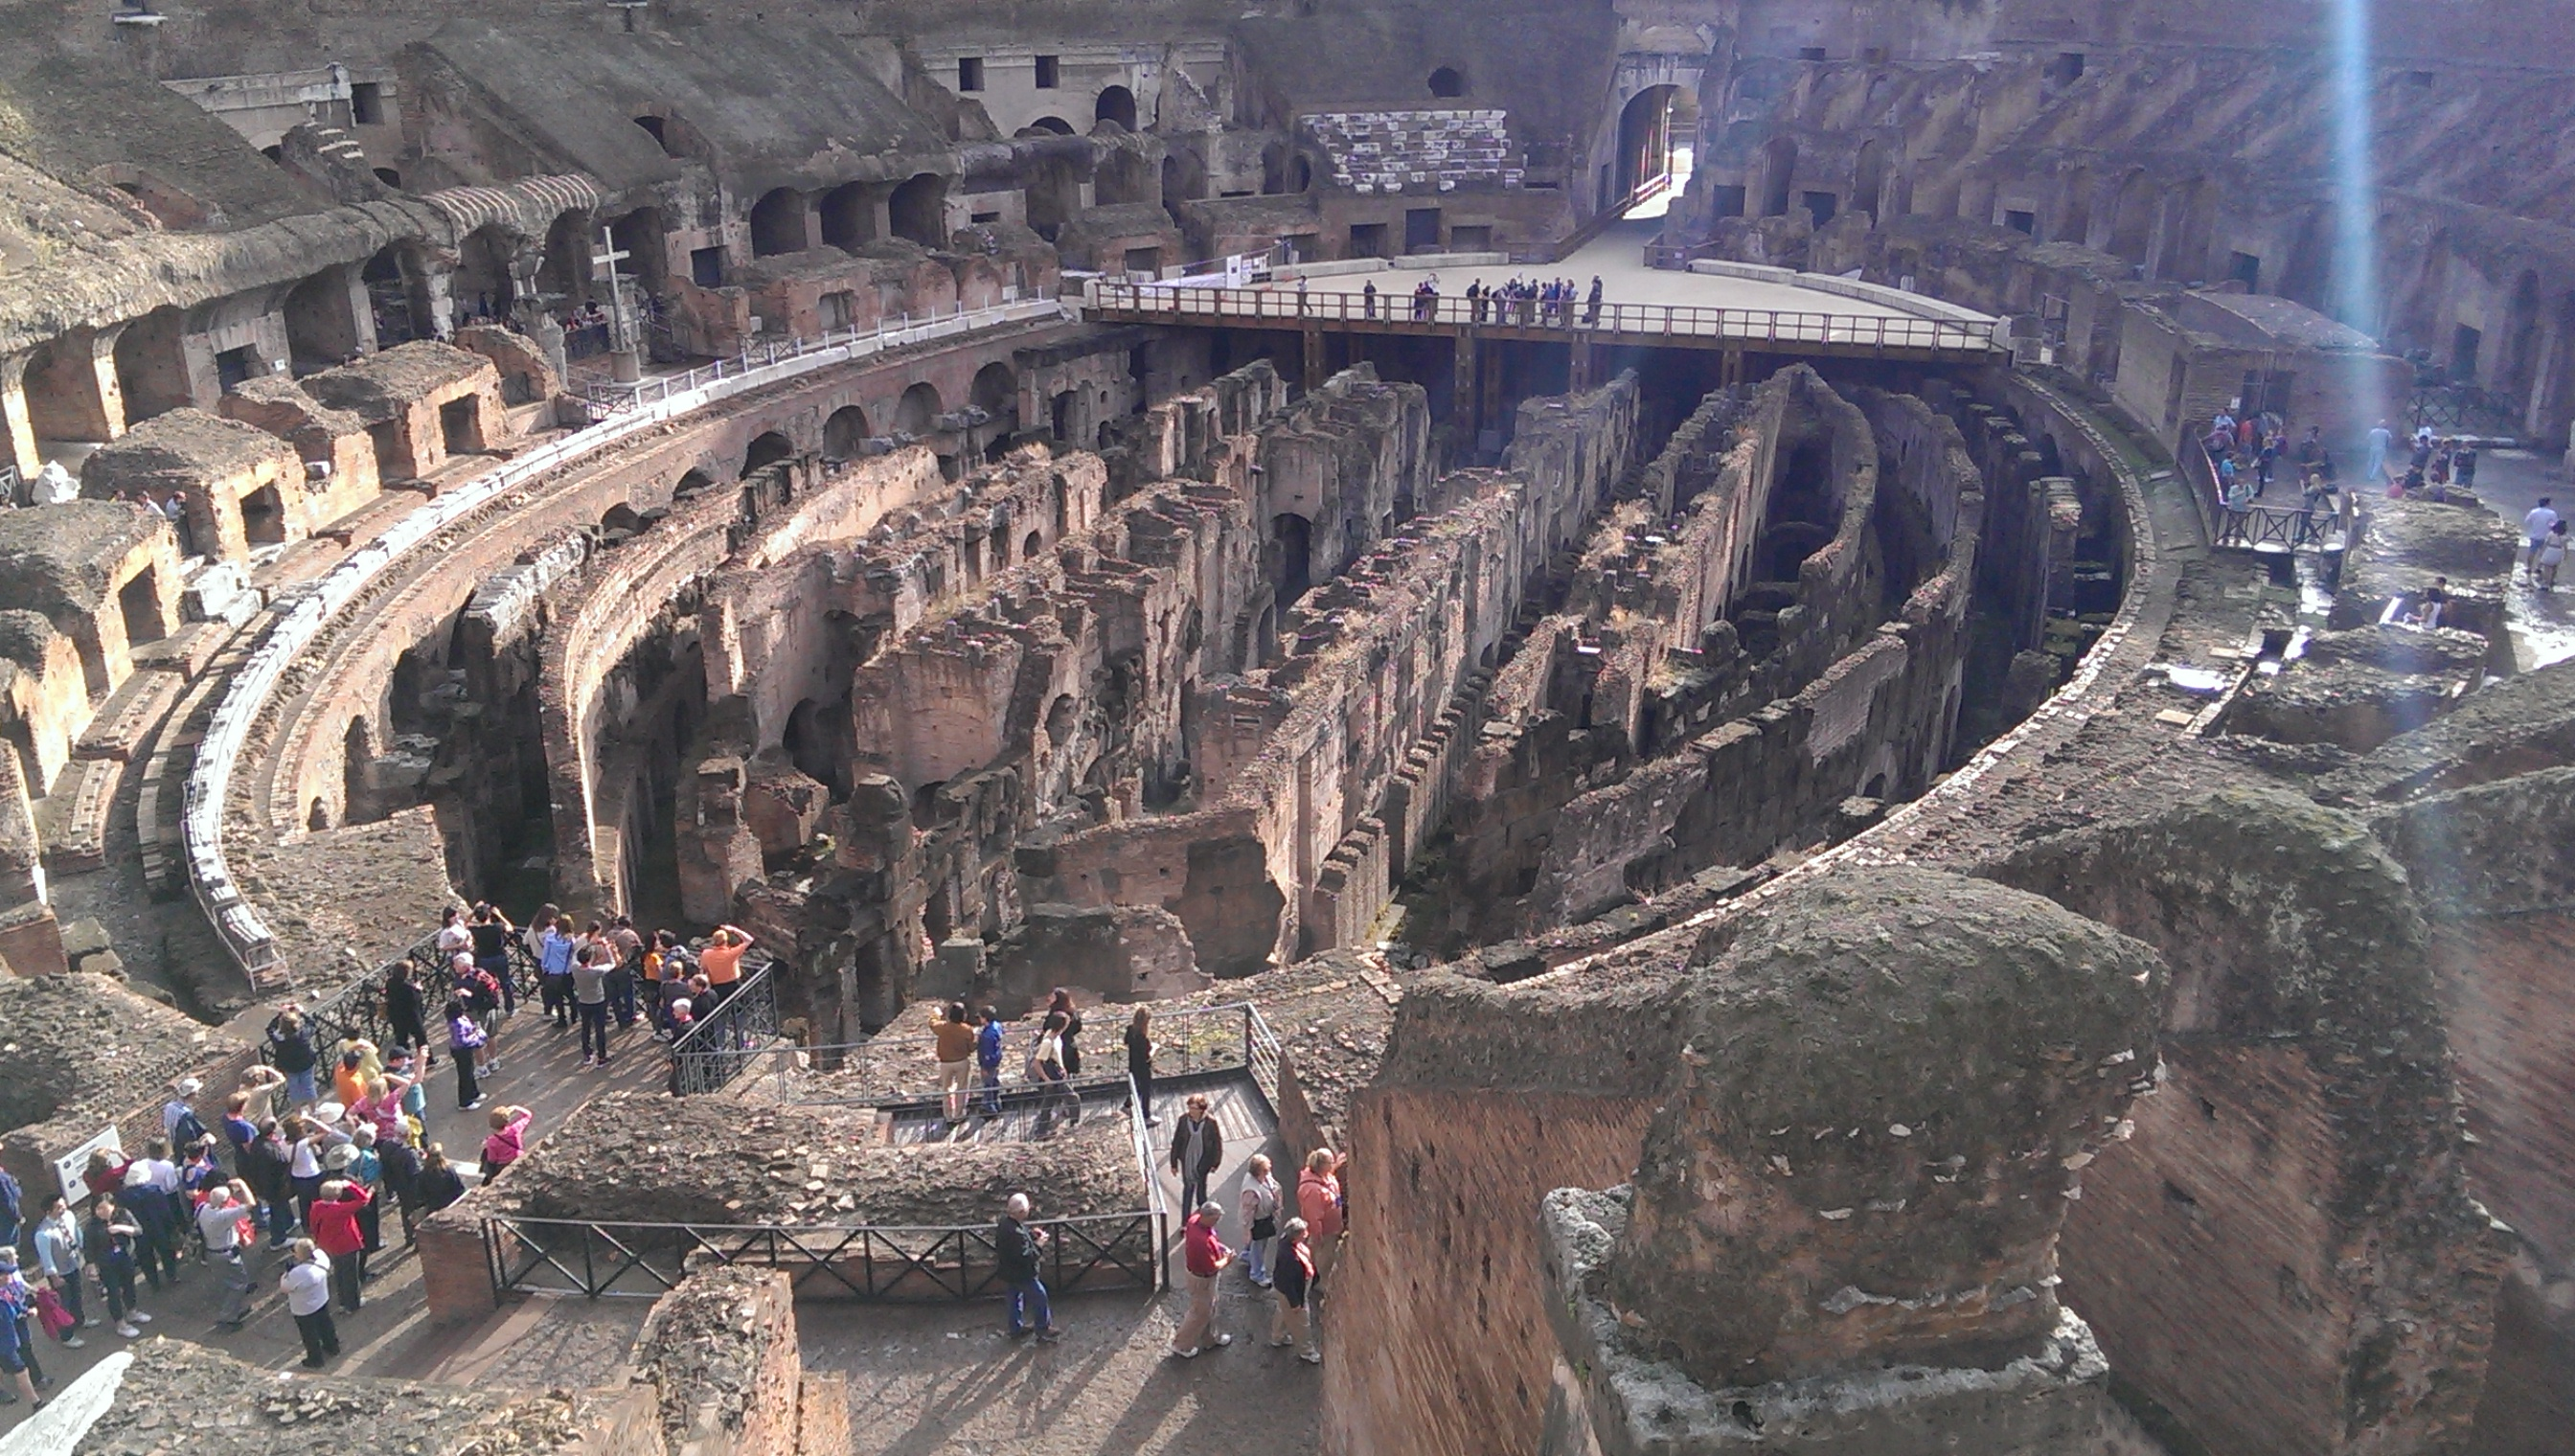 Under the ground of the Colosseum with all the trap doors